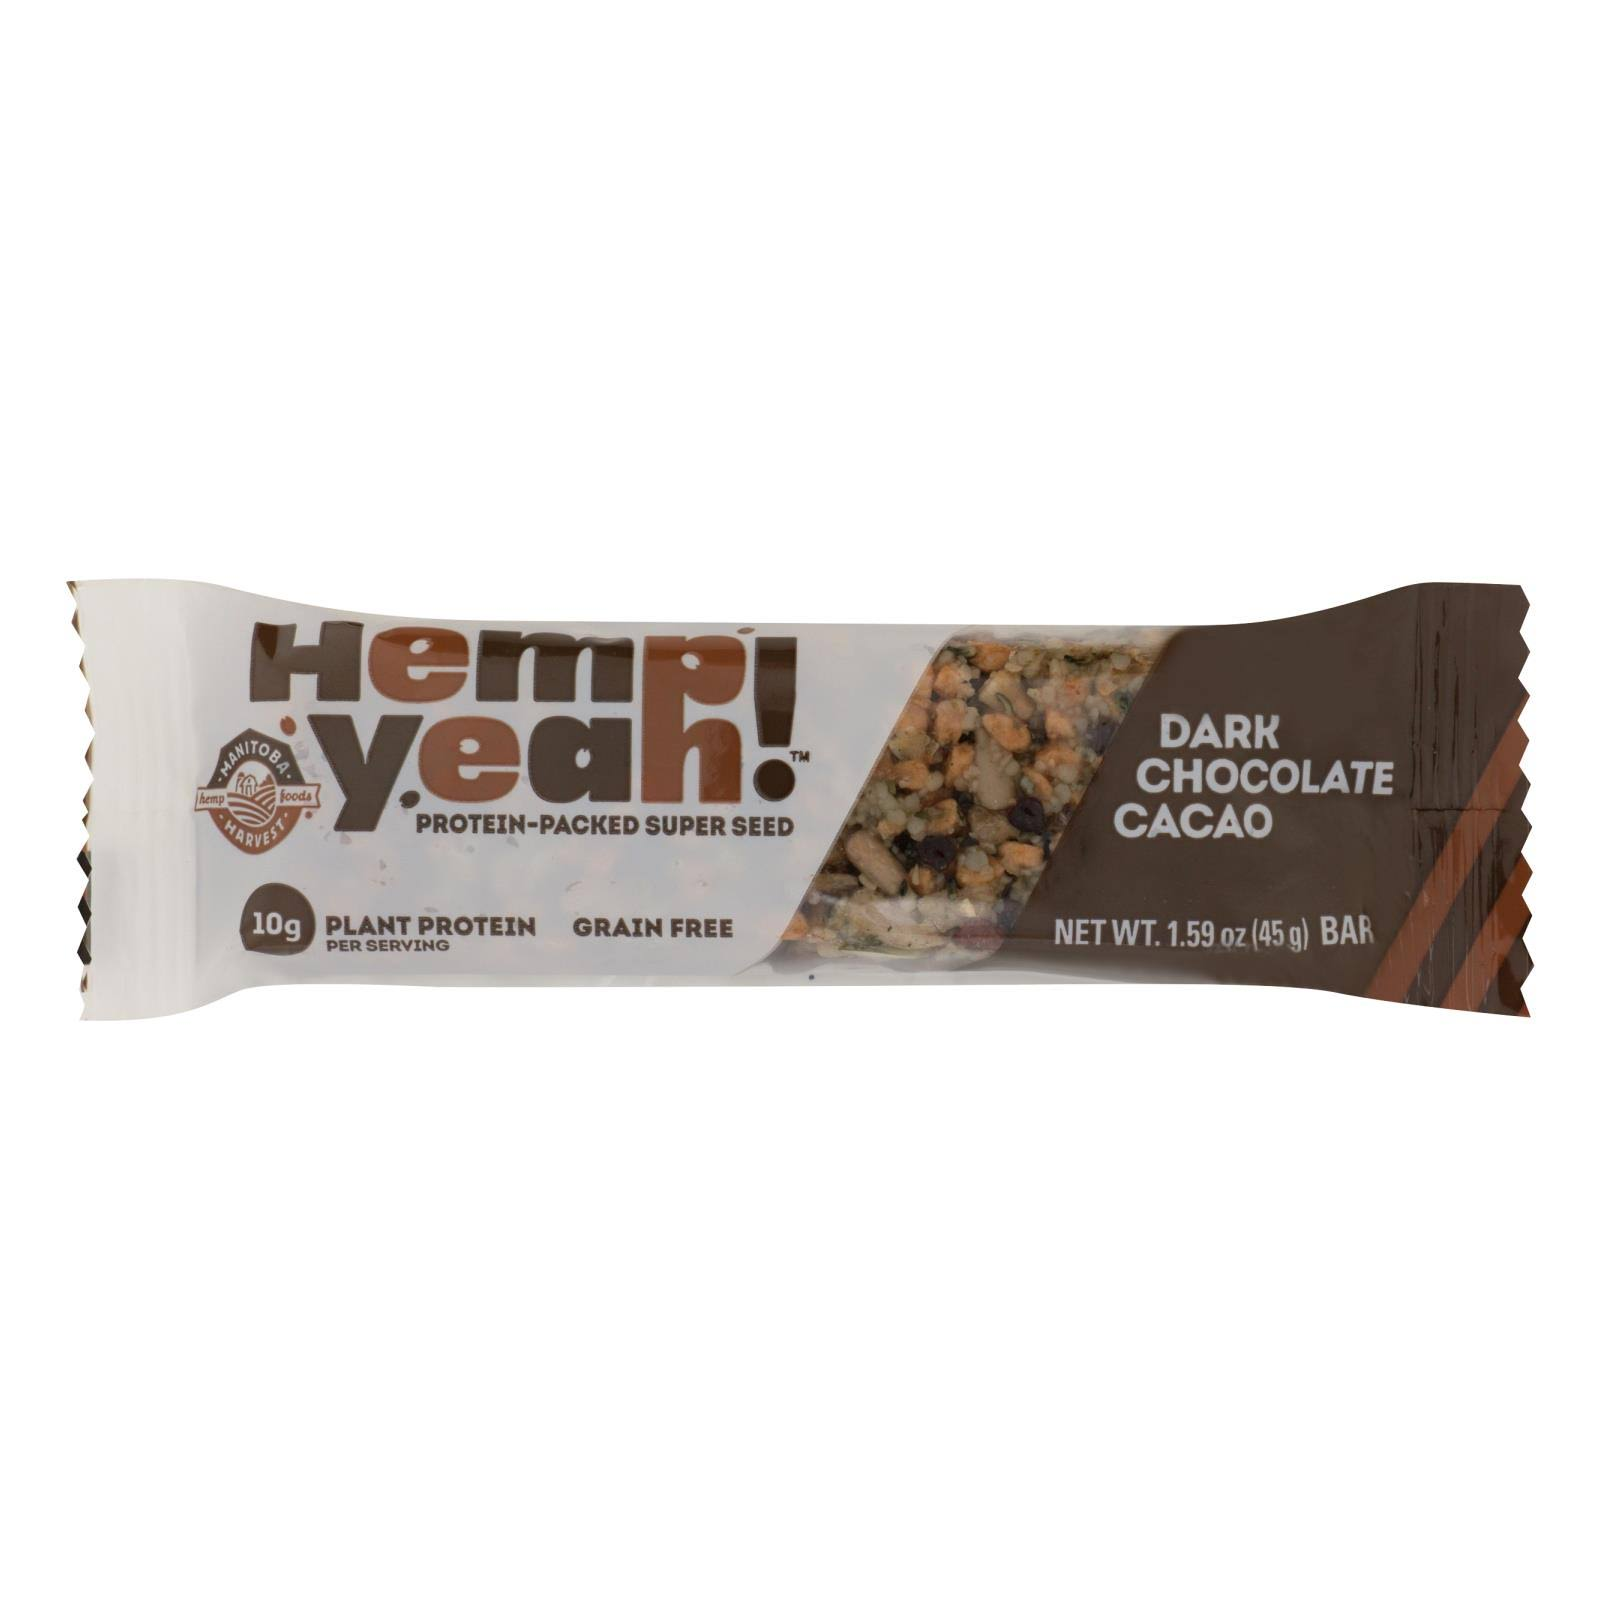 Hemp Yeah Bar, Dark Chocolate Cacao - 1.59 oz